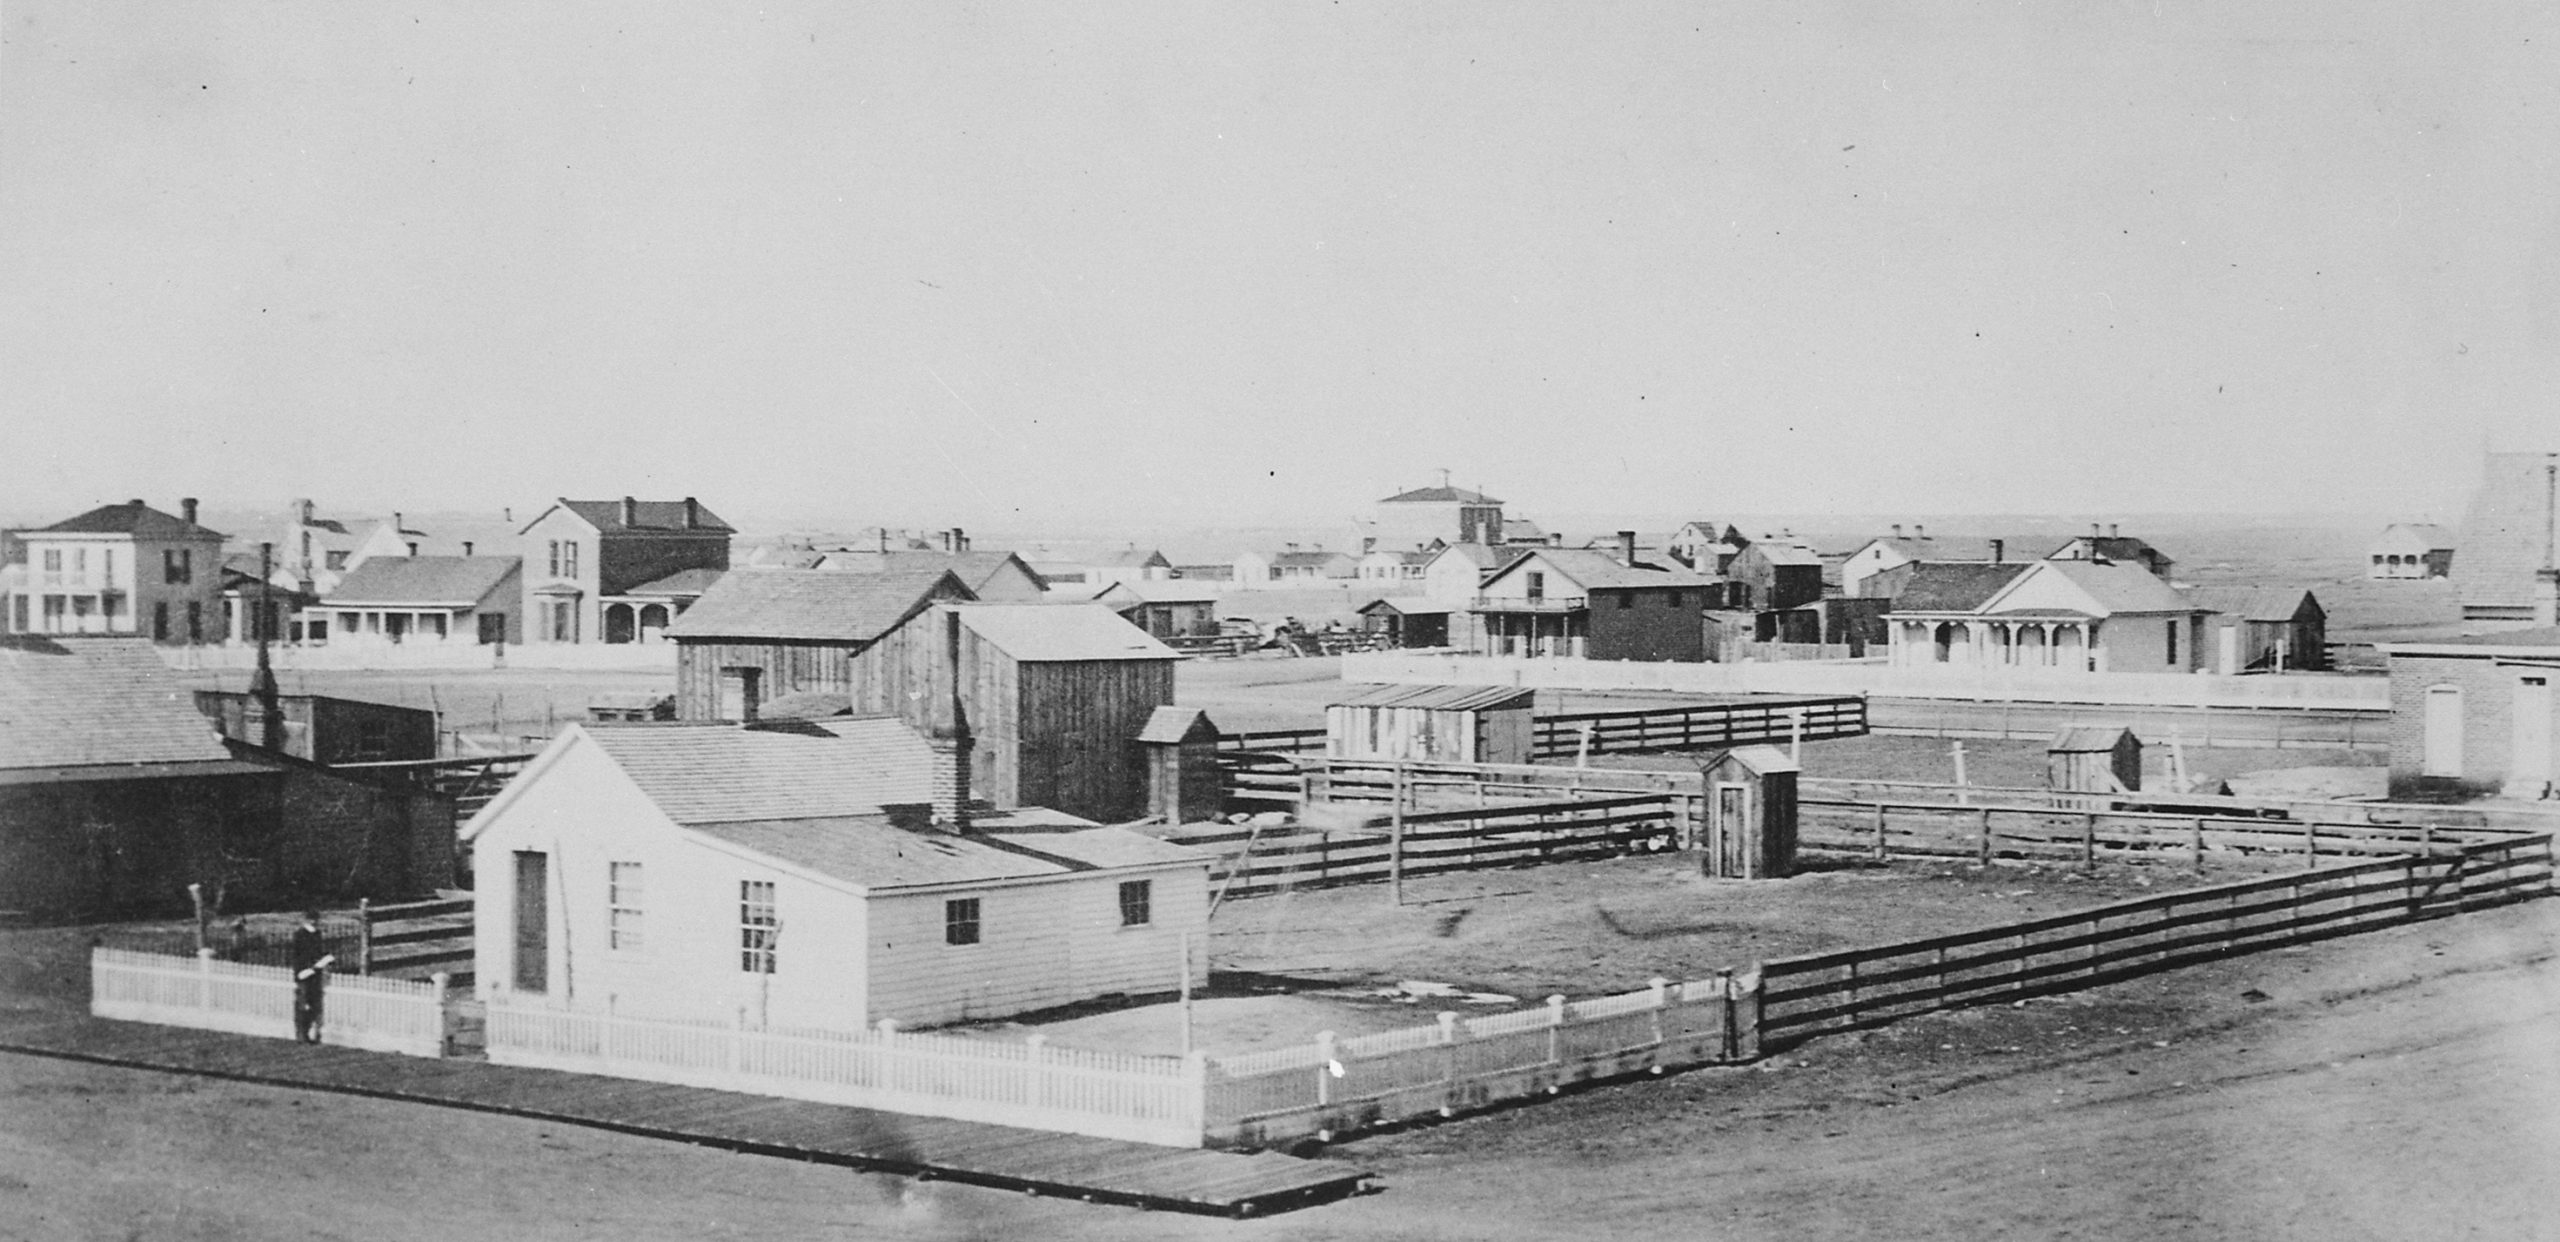 Cheyenne, Wyoming in 1876